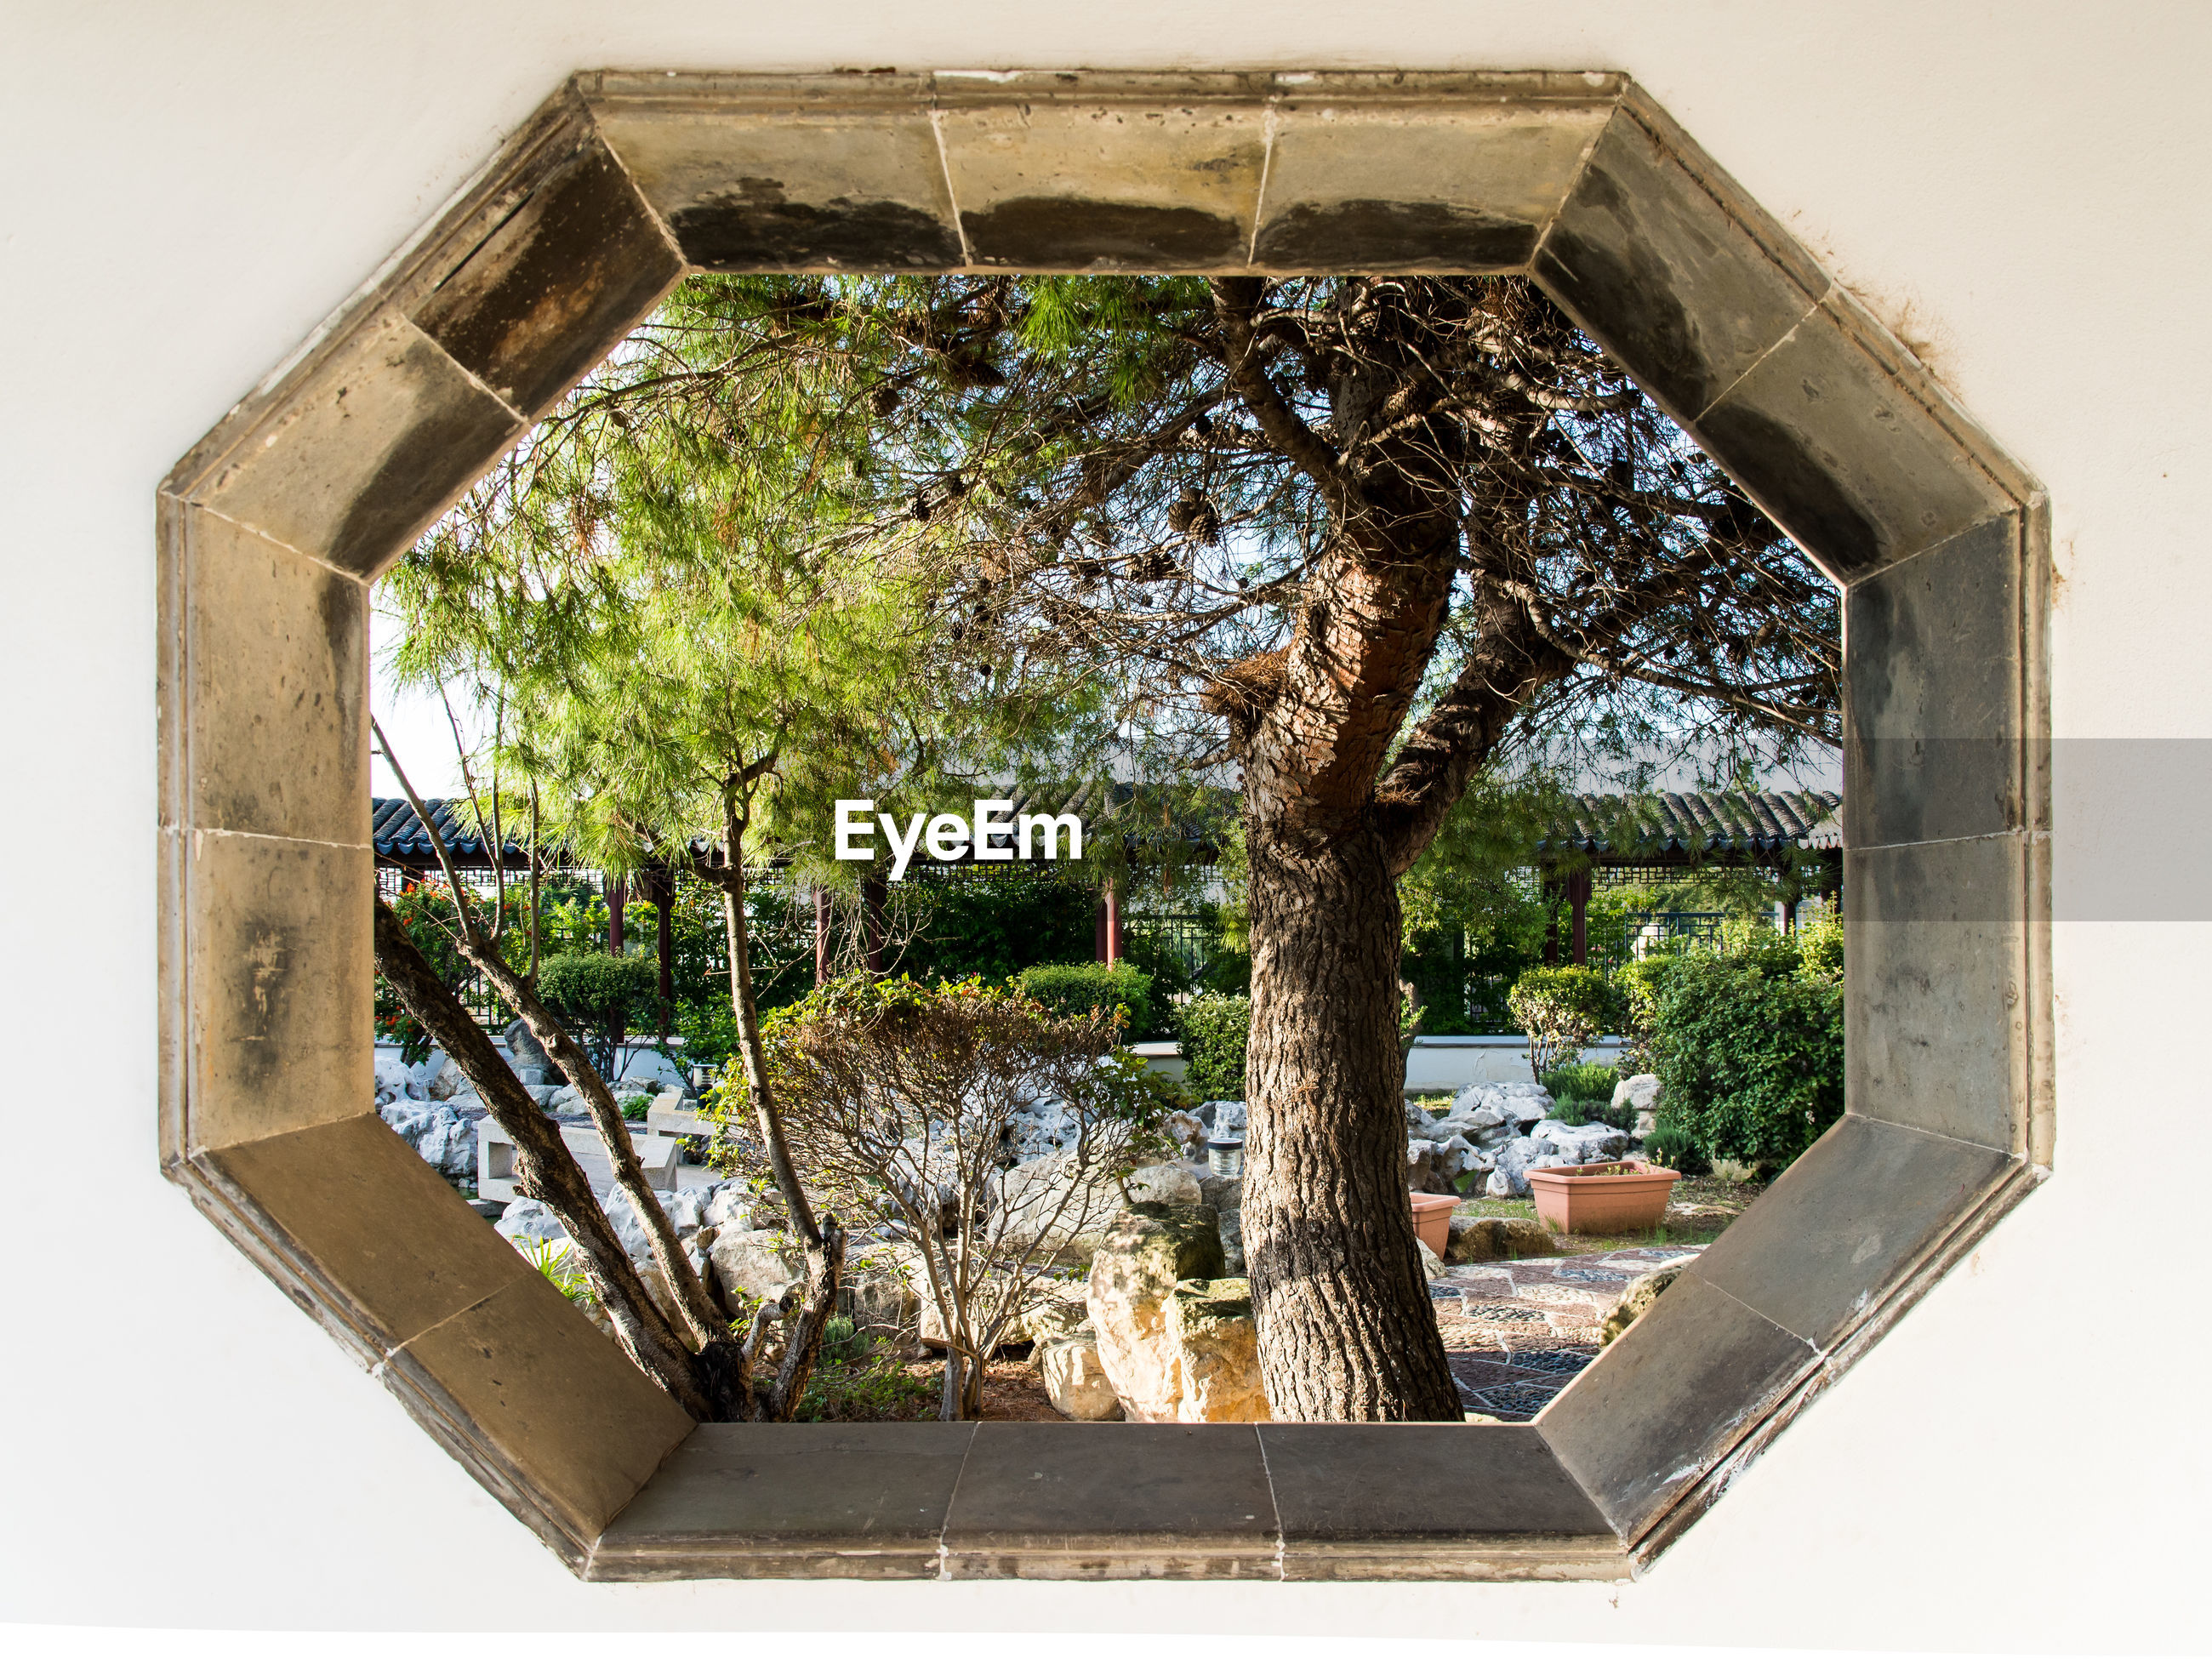 Trees and plants seen through window of building